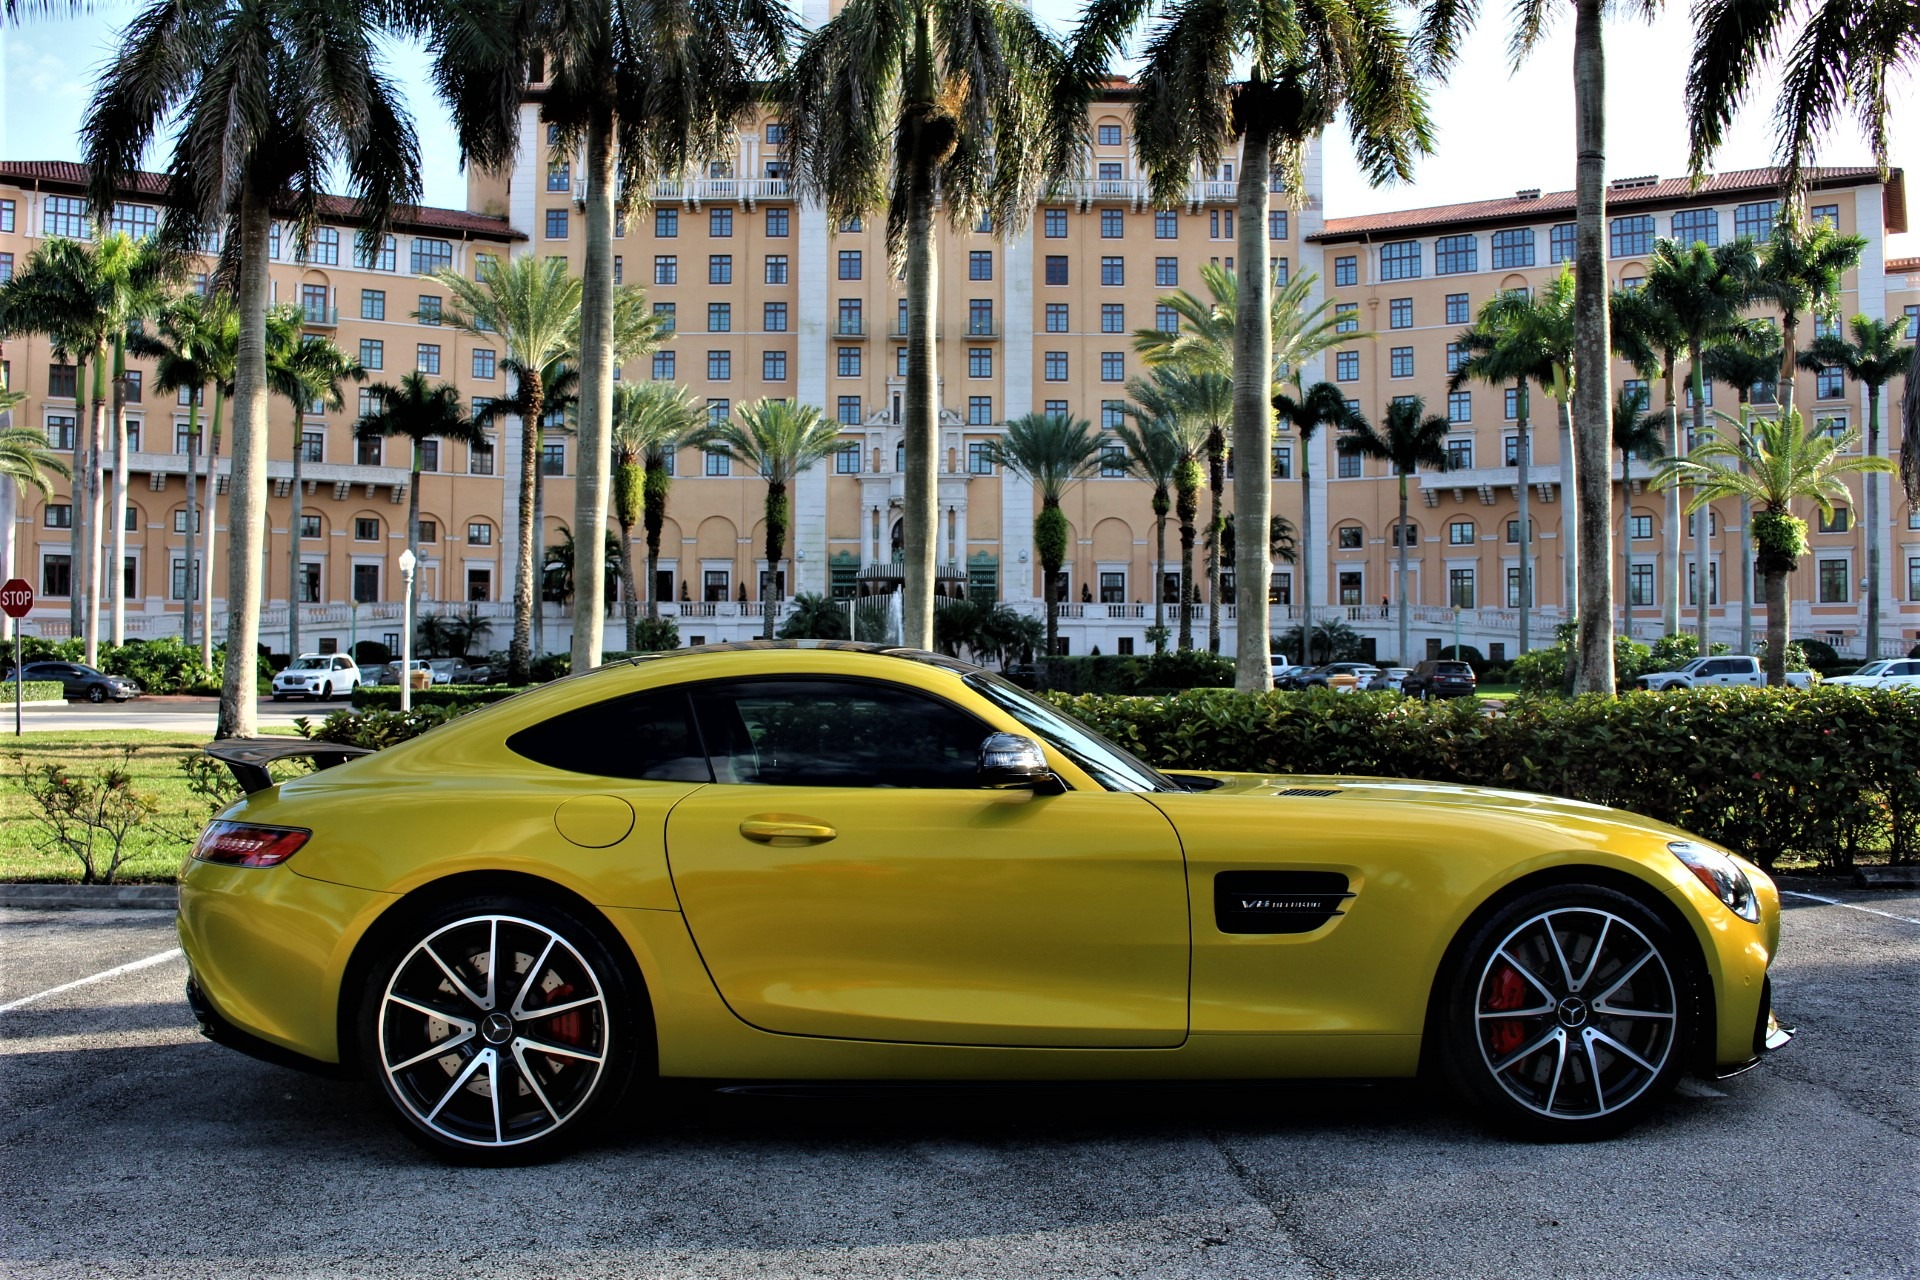 Used 2016 Mercedes-Benz AMG GT S for sale Sold at The Gables Sports Cars in Miami FL 33146 2